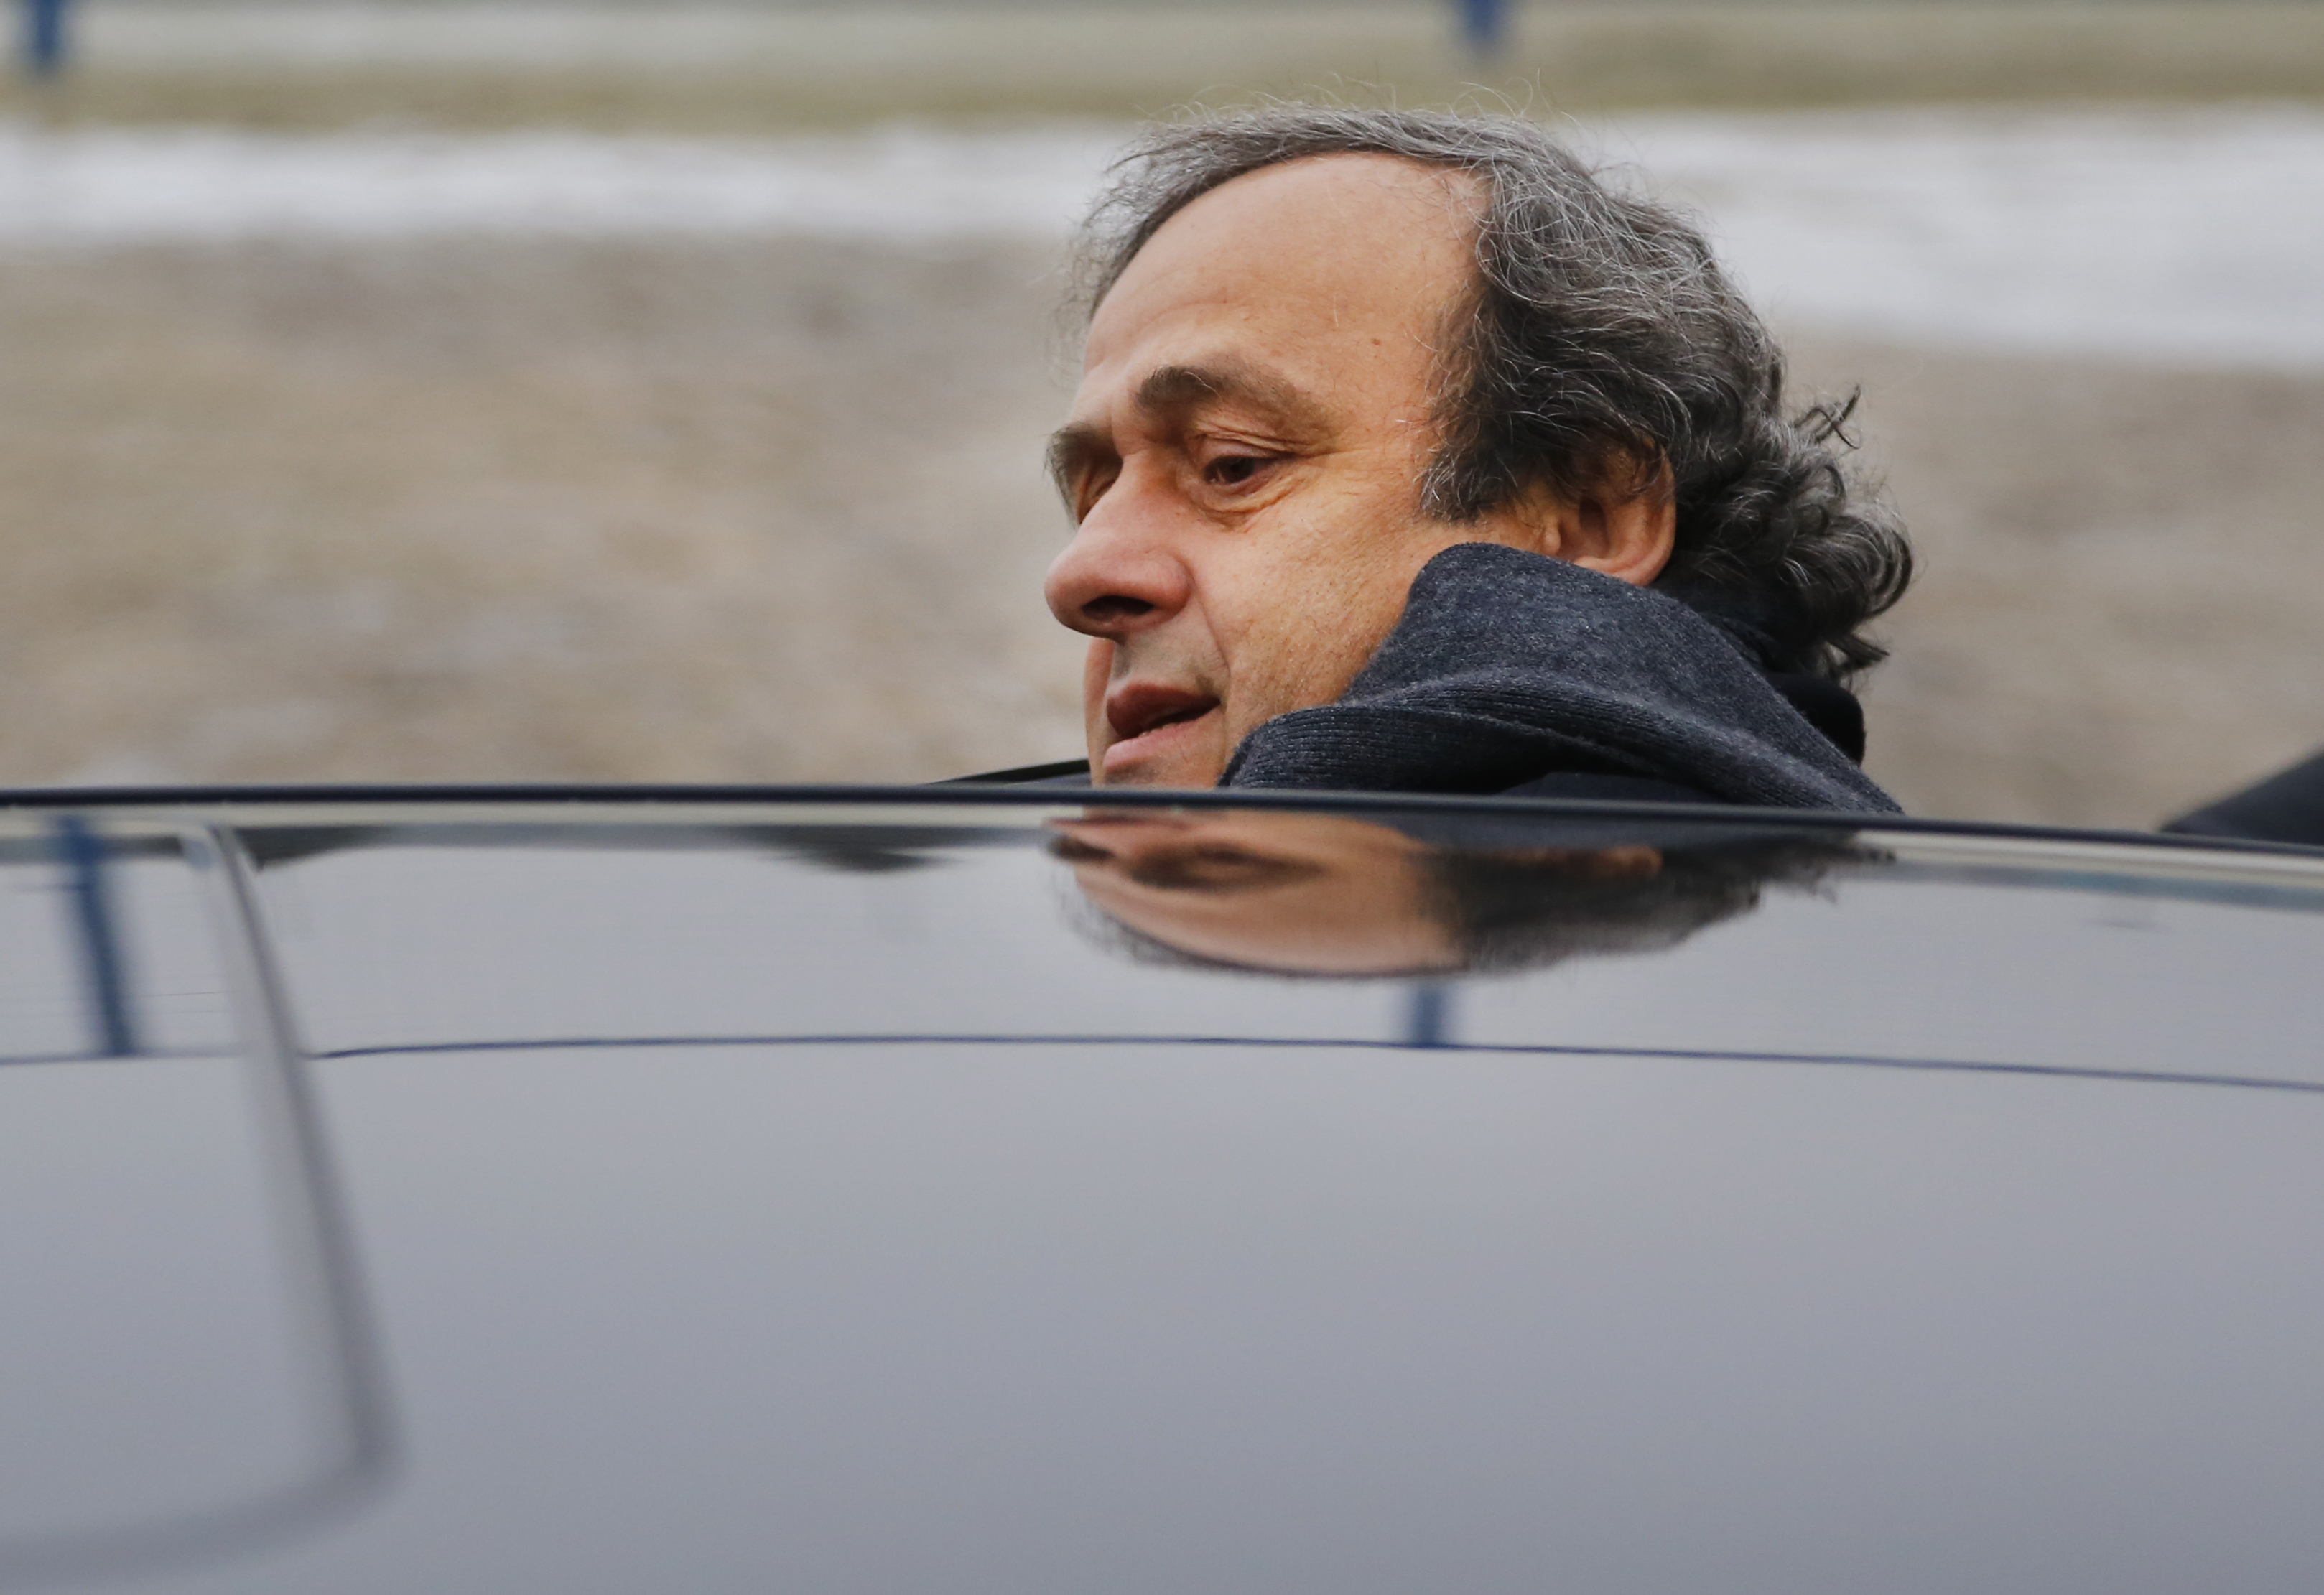 FILE - In this Jan. 19, 2015 file photo UEFA President Michel Platini gets into a car after a visit to the football arena in Minsk, Belarus. Photo: AP